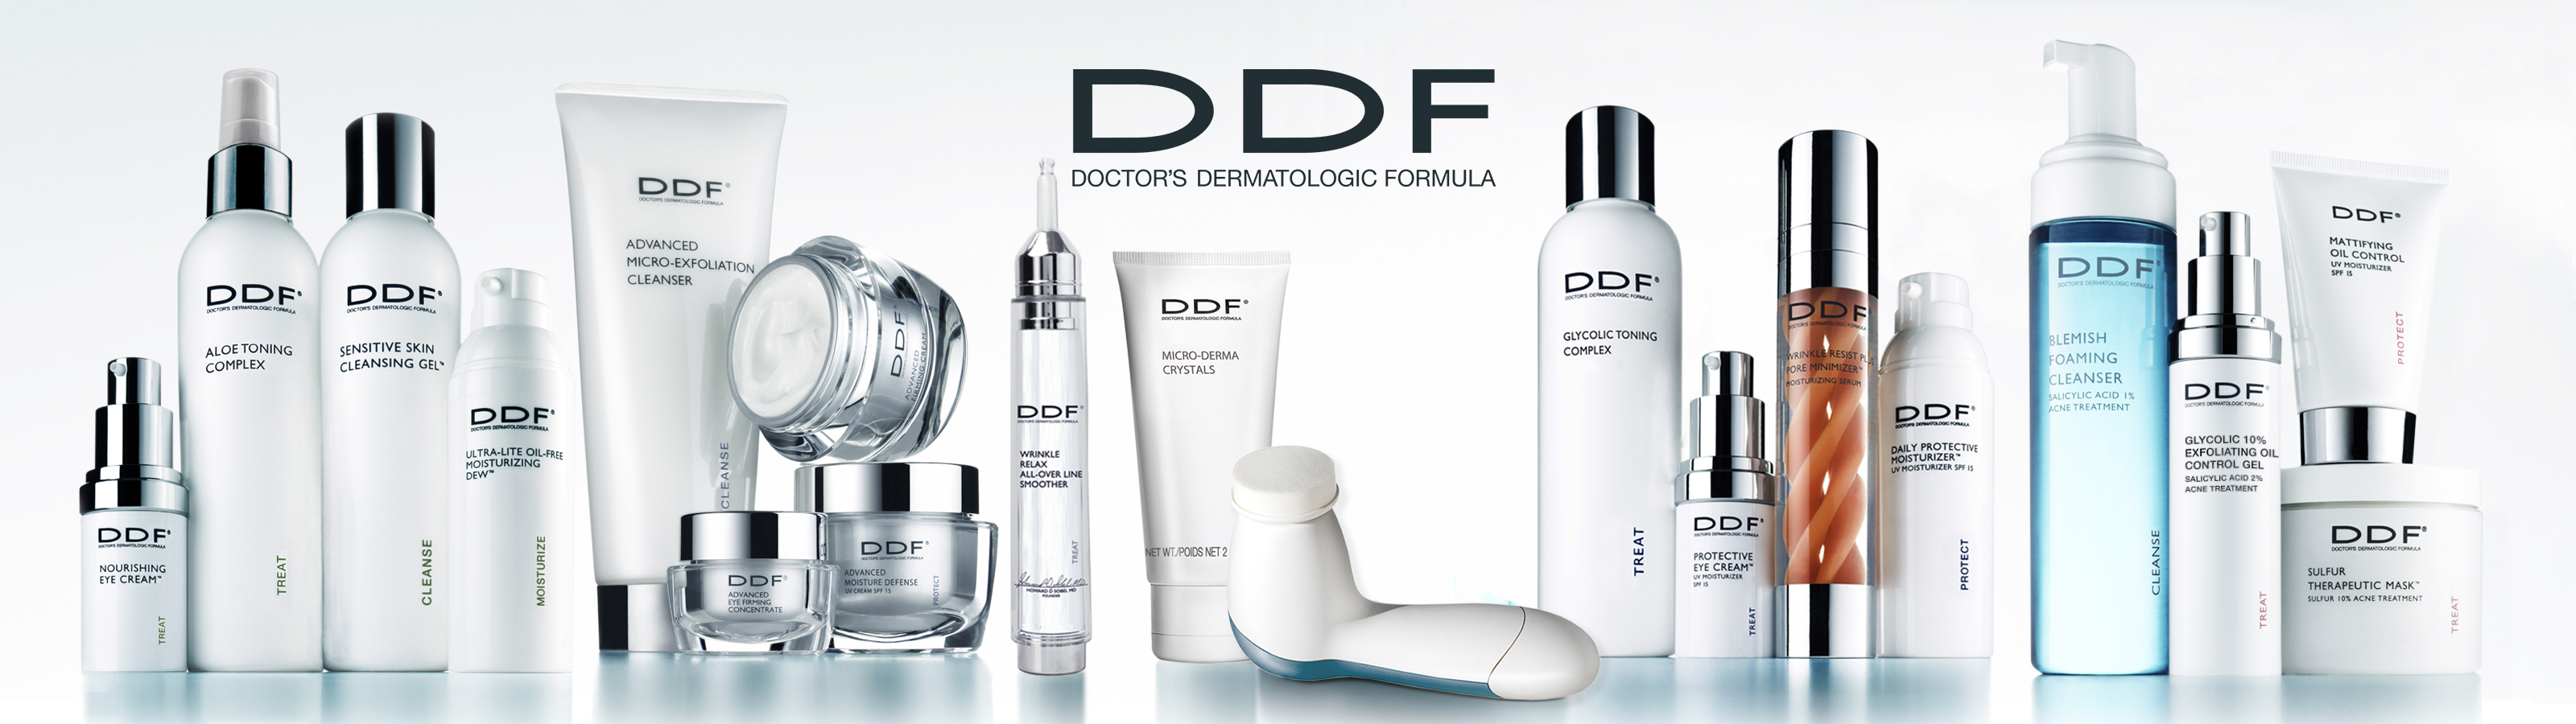 Ddf facial products